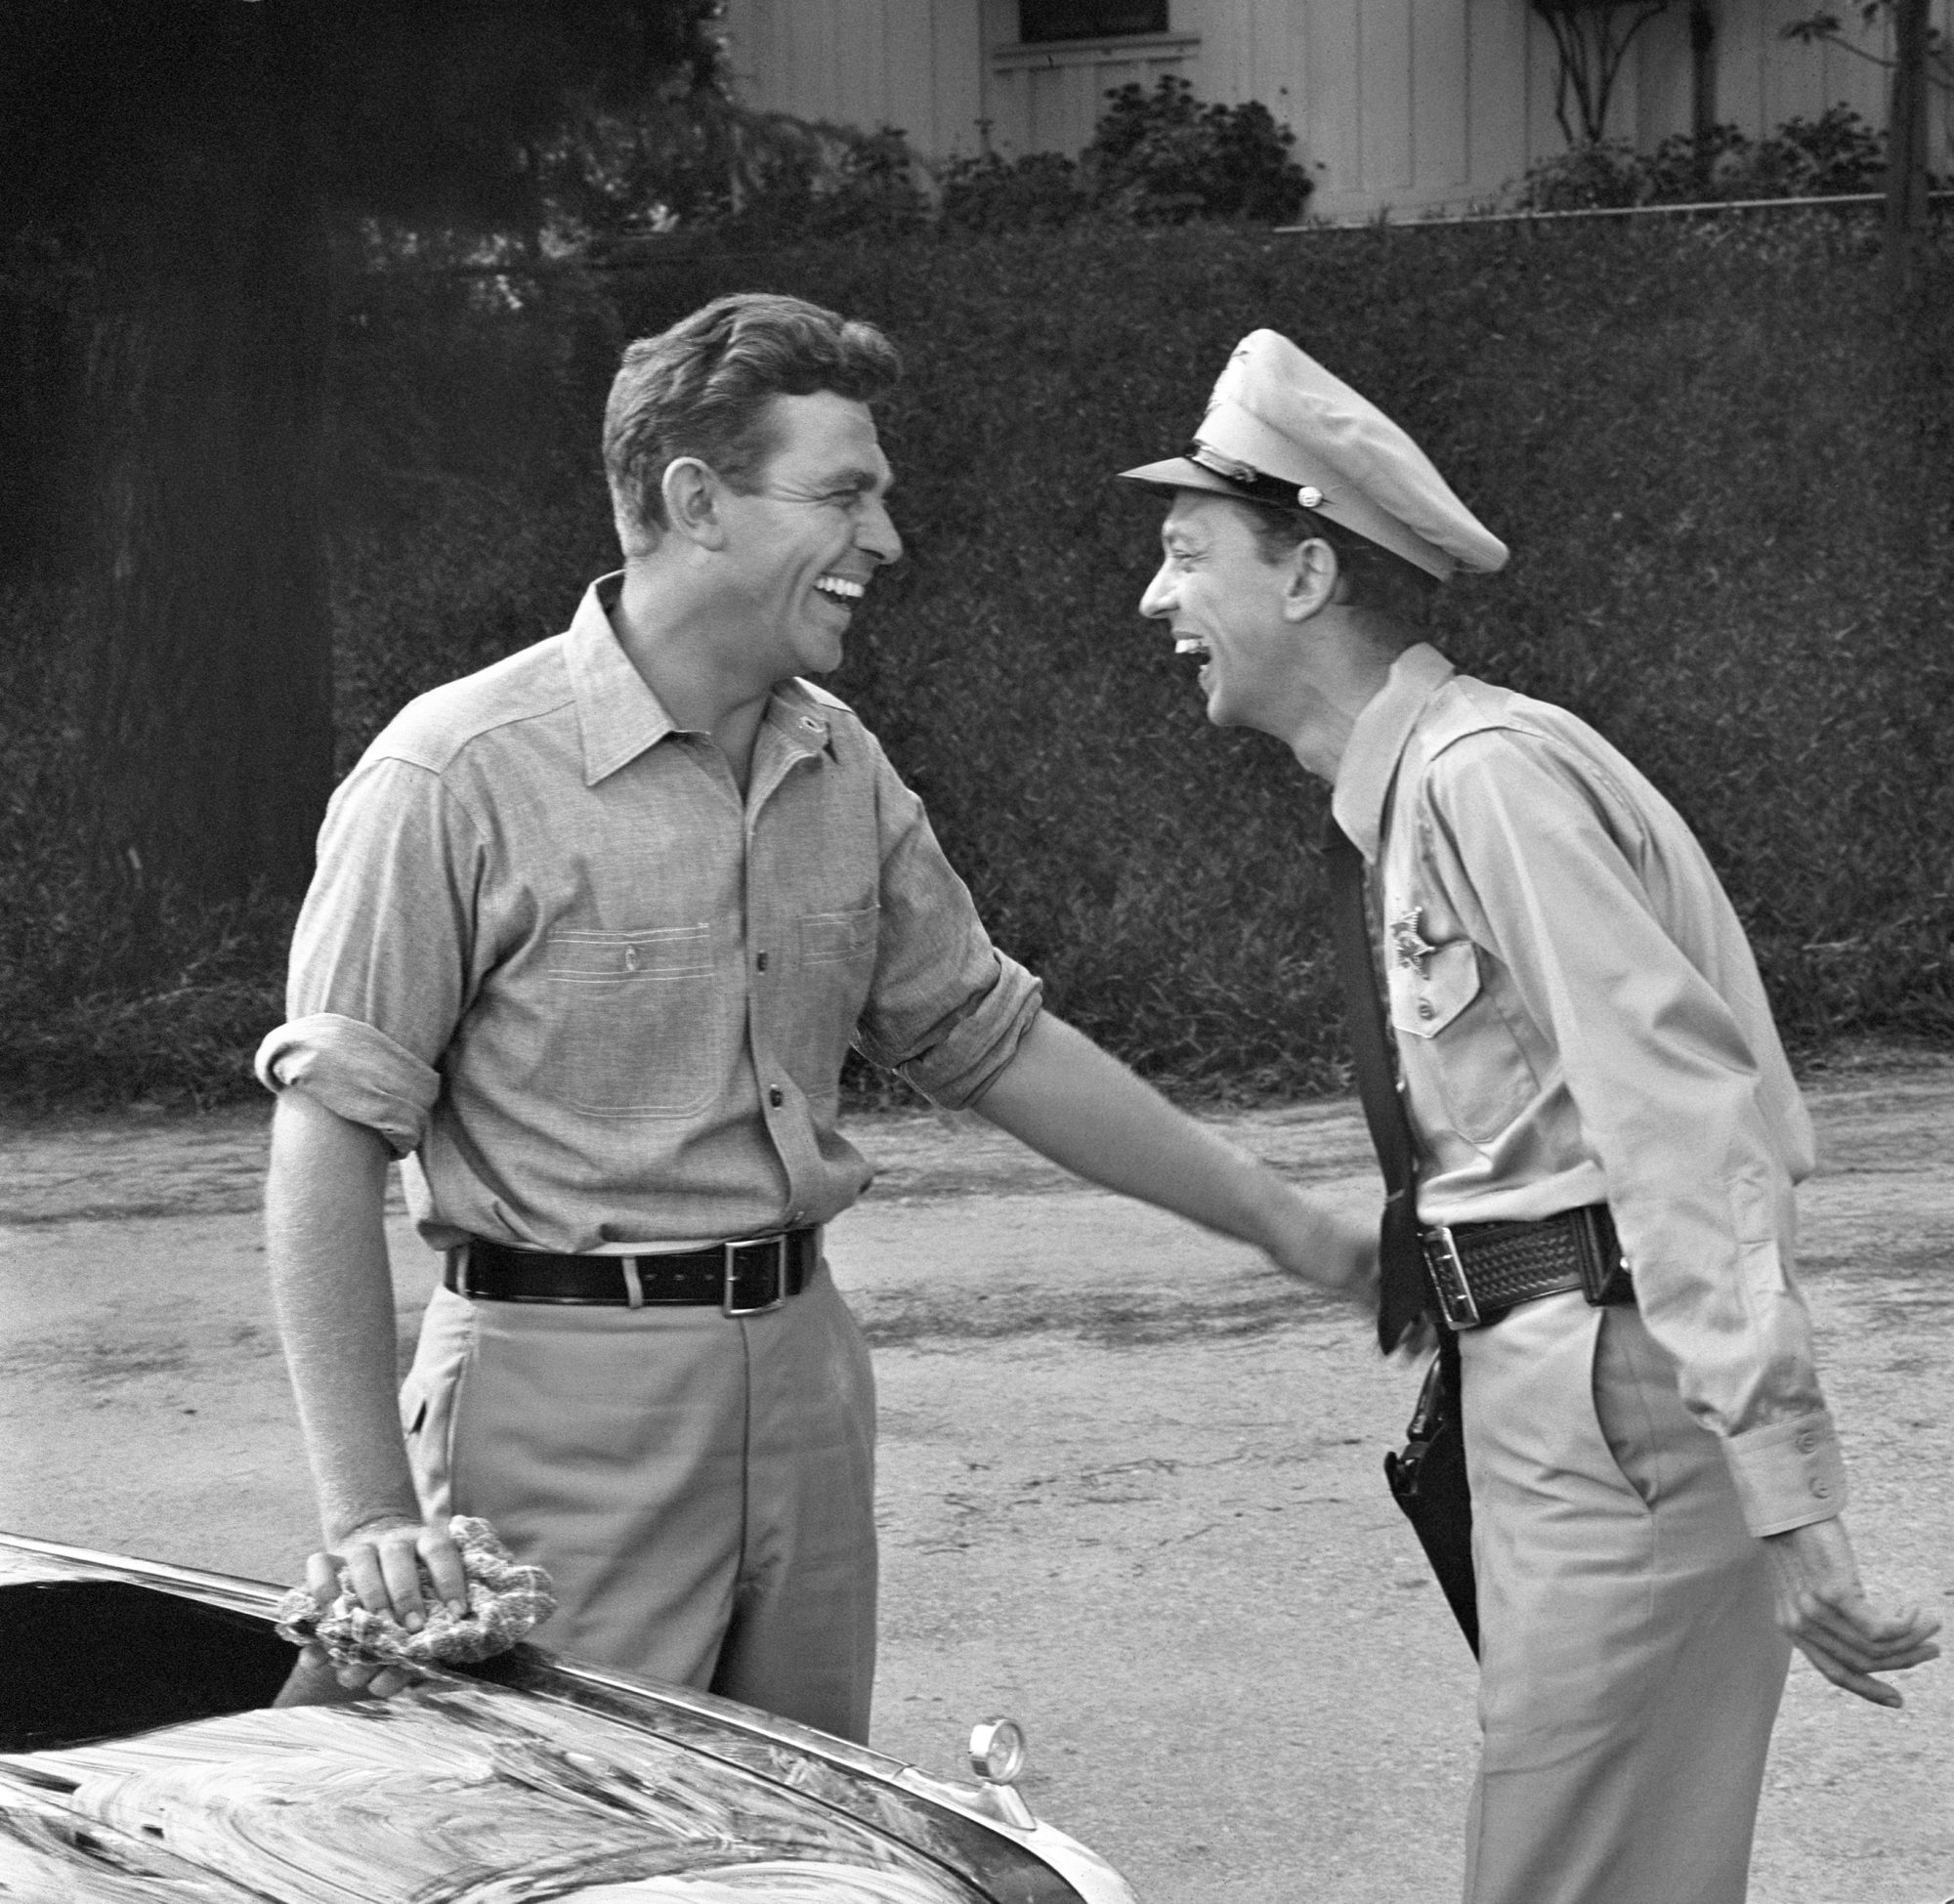 Barney Fife Quotes The South's Favorite Deputy Barney Fife  Southern Living